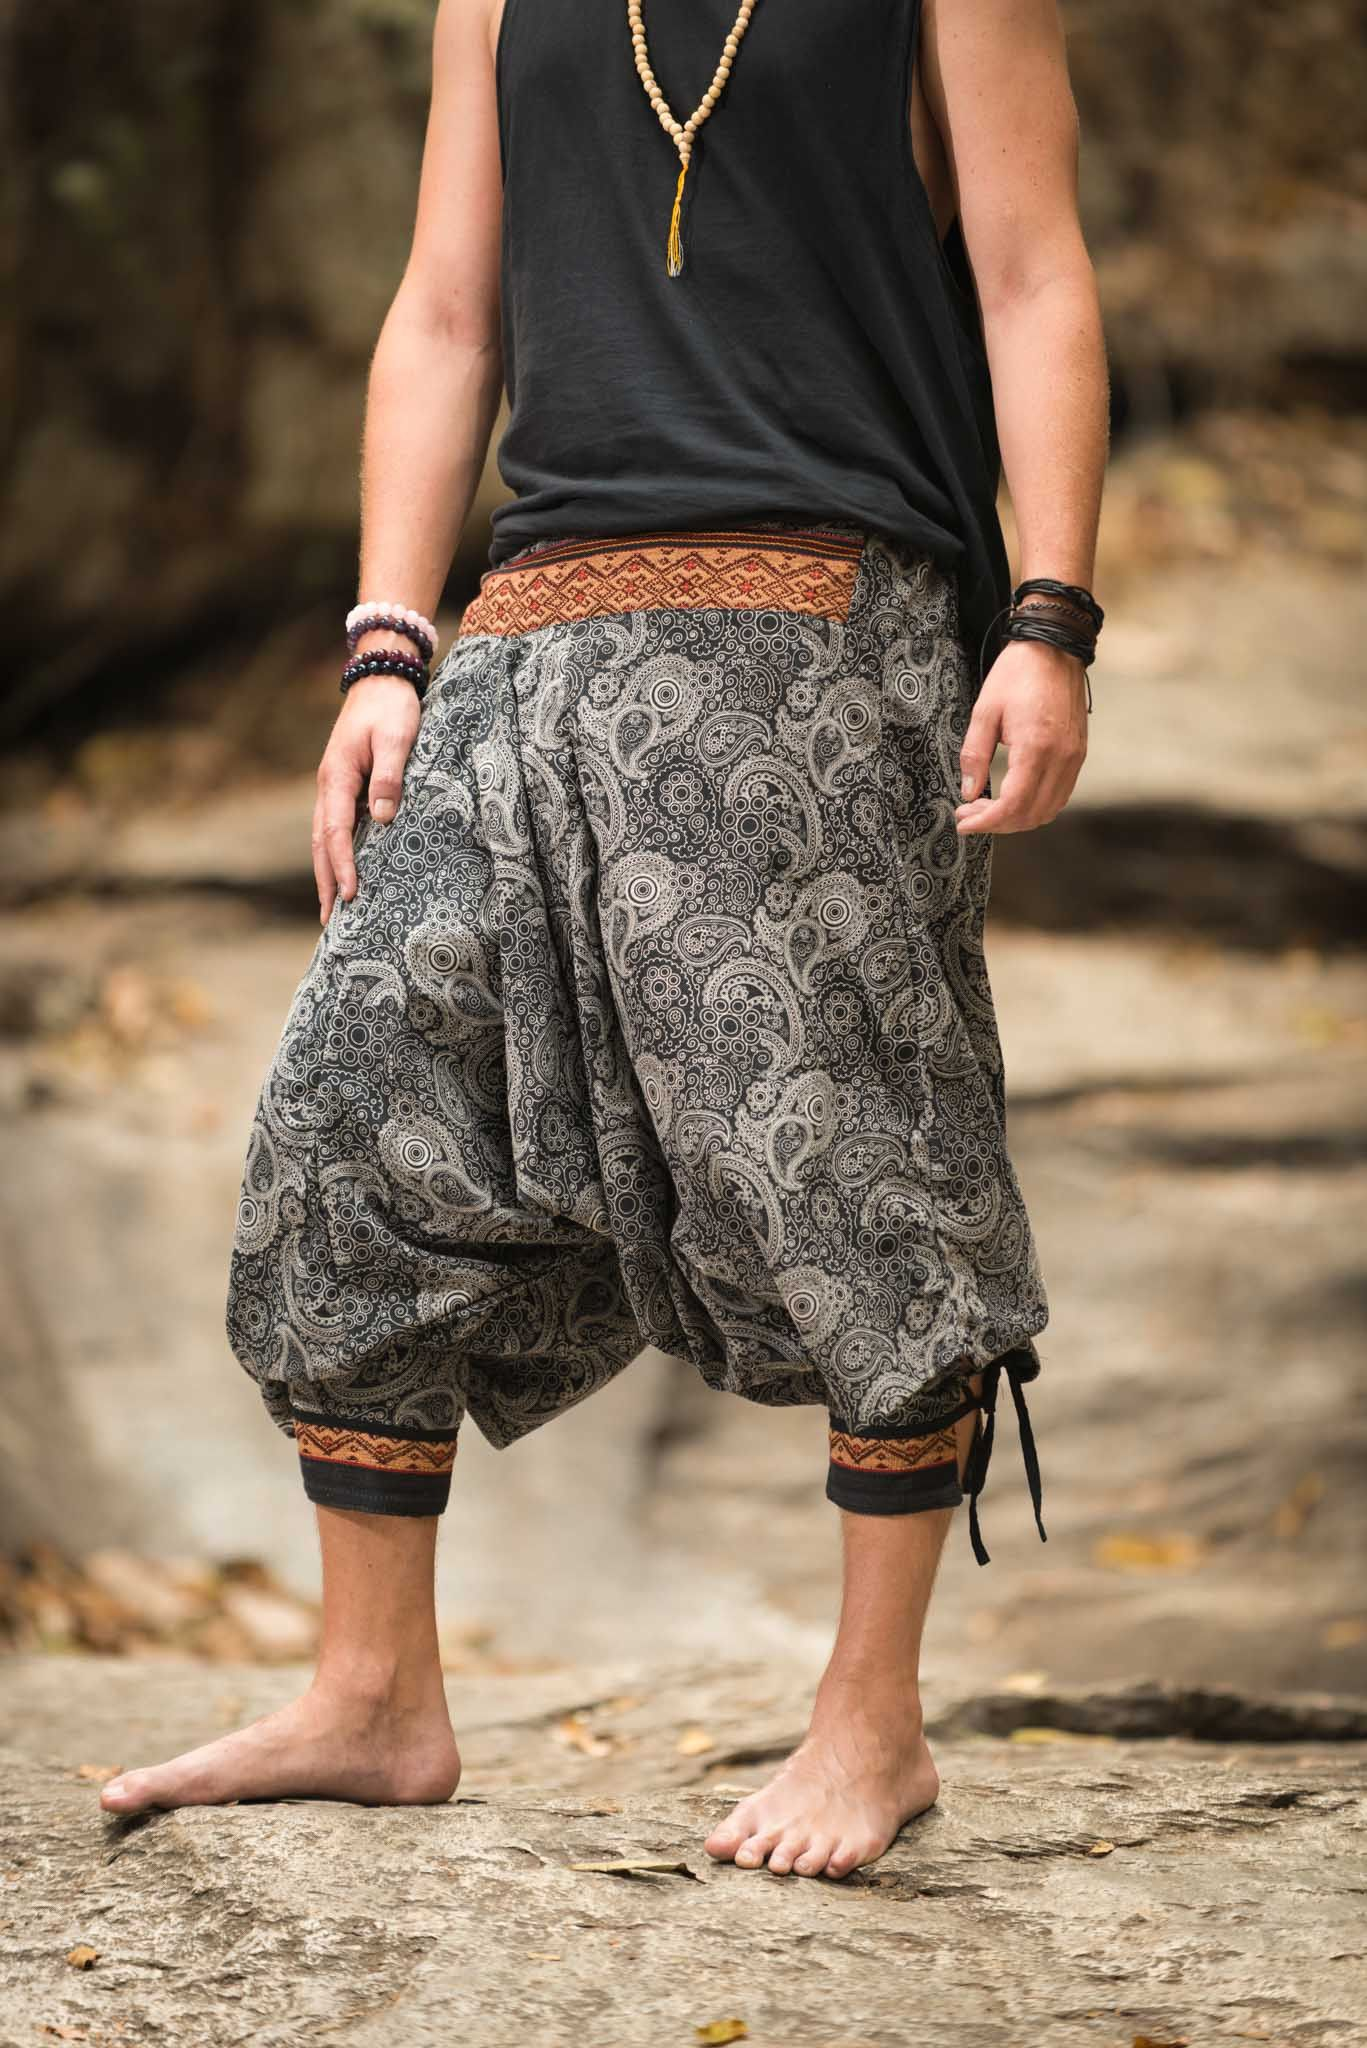 Paisley Thai Hill Tribe Fabric Men's Harem Pants with ...